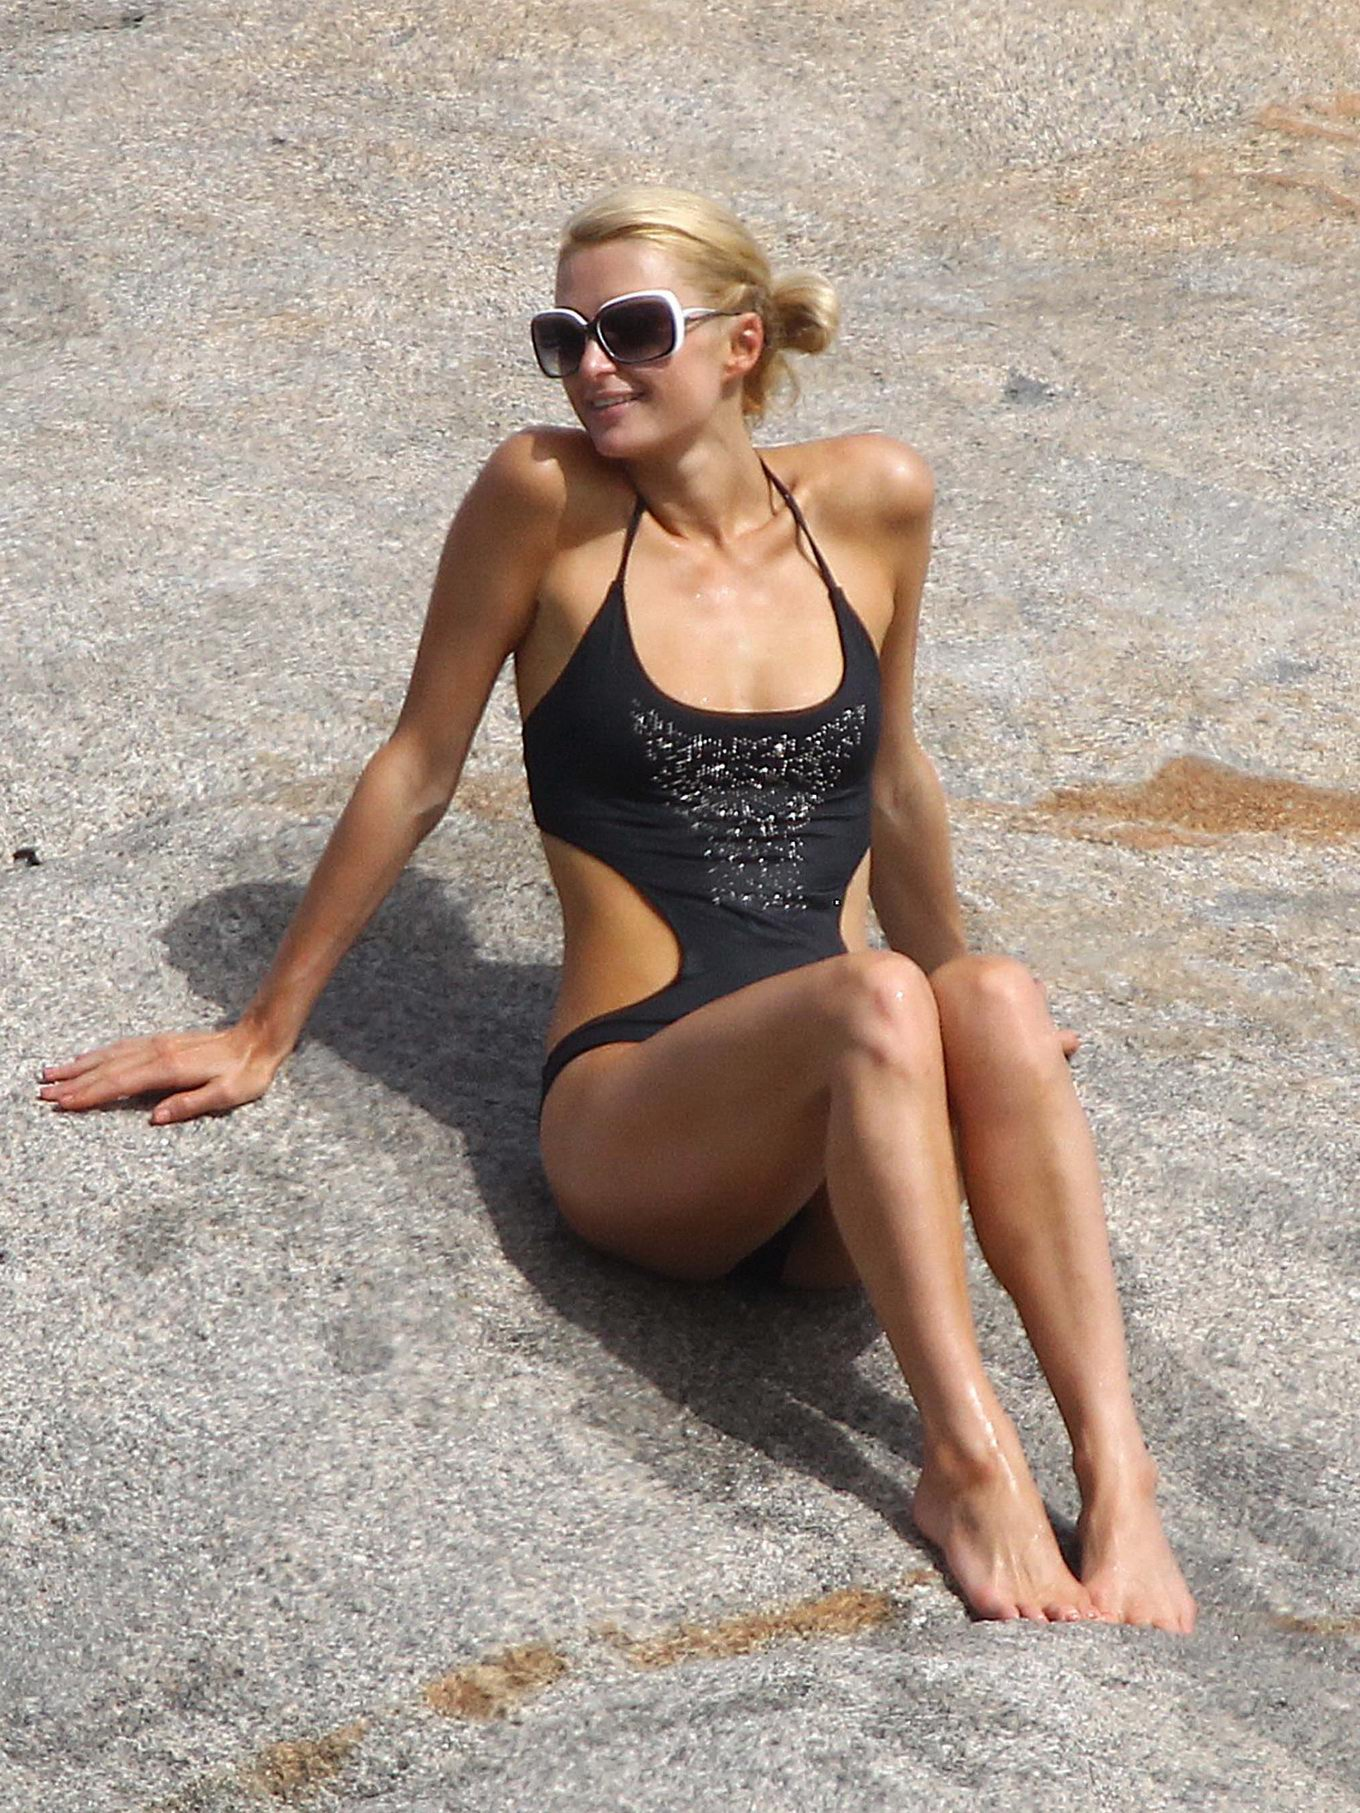 paris hilton young and nude on the beach